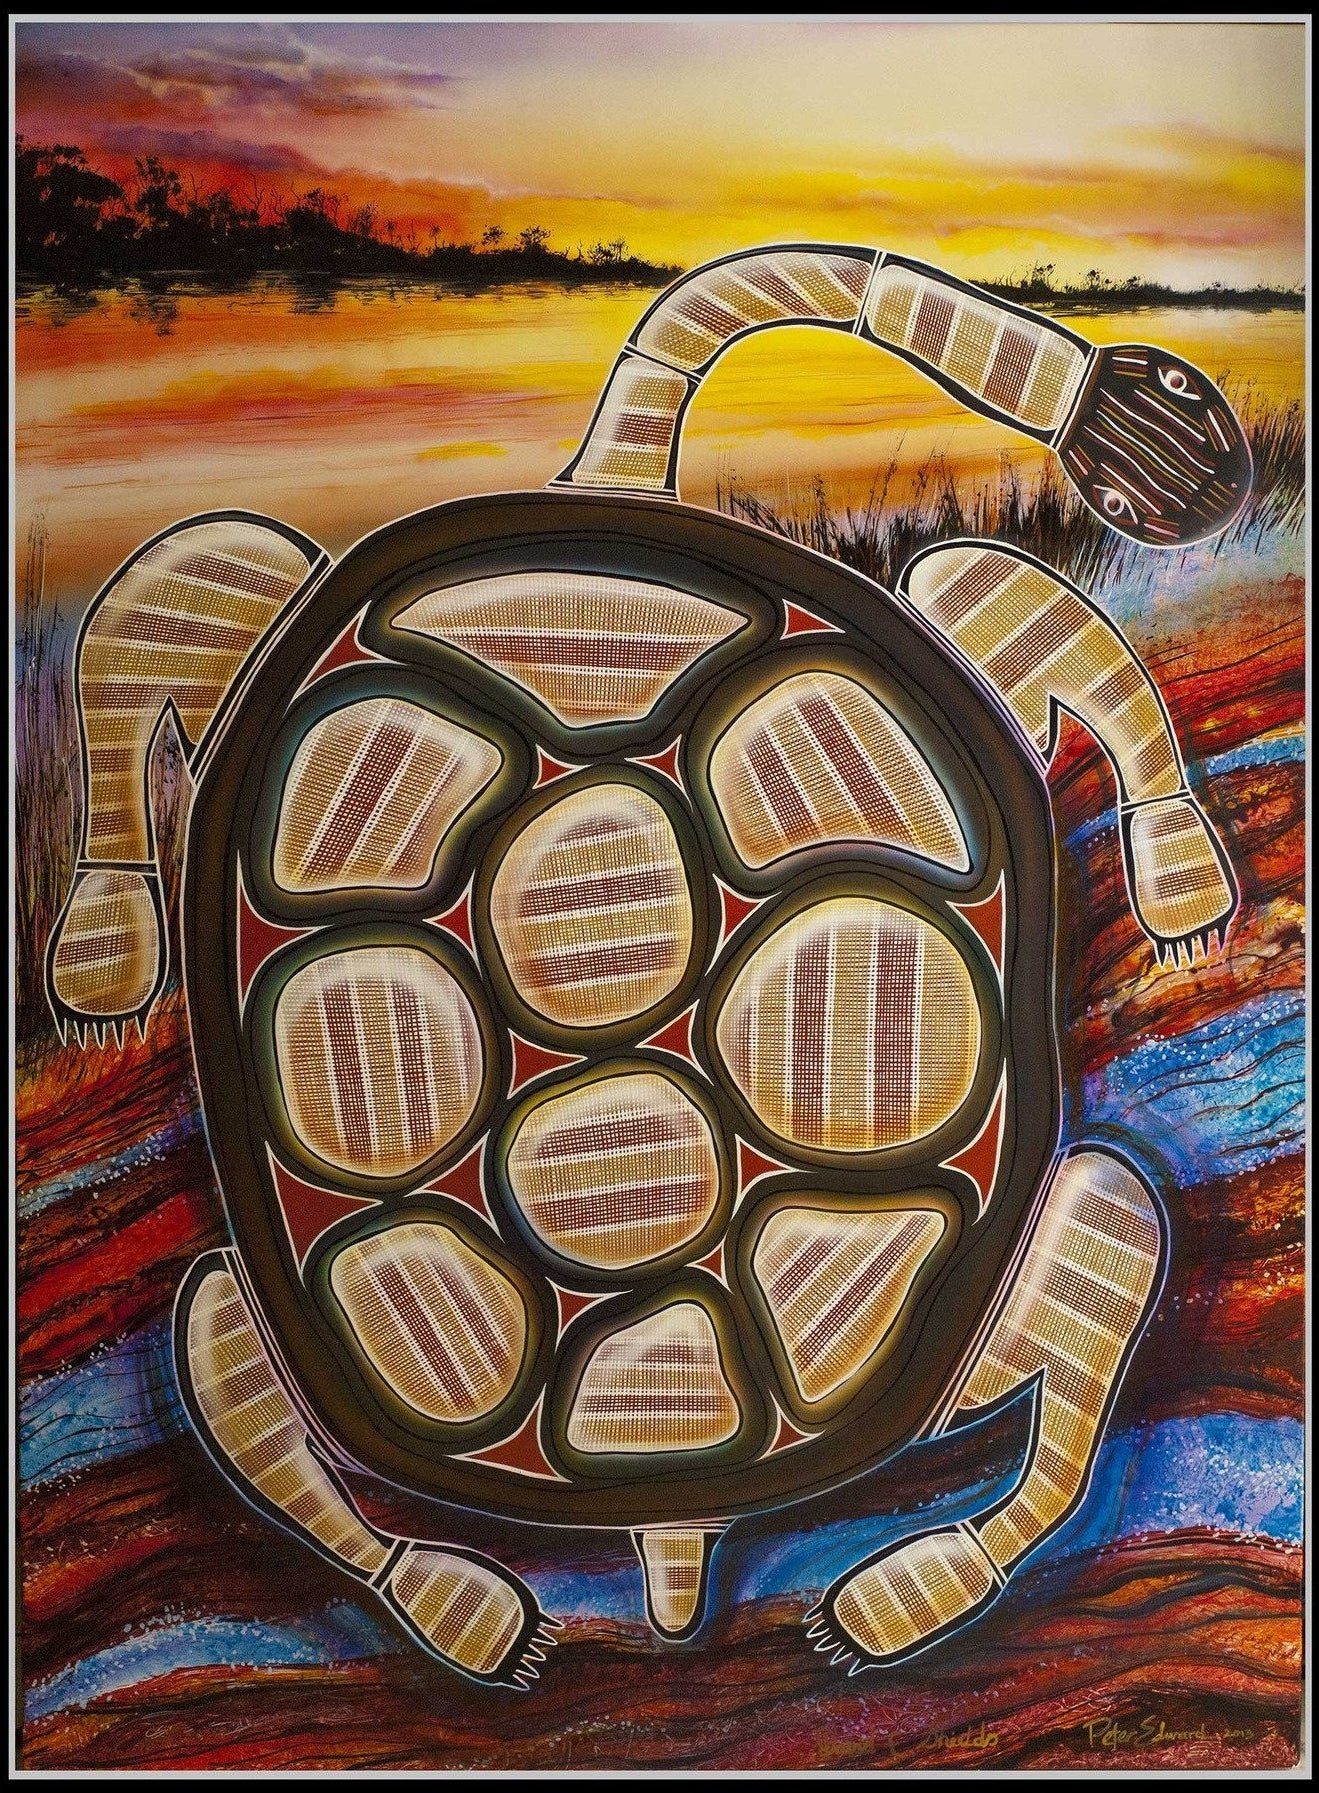 Starwin Social Enterprise, Fusion Art Turtle Dreaming Painting